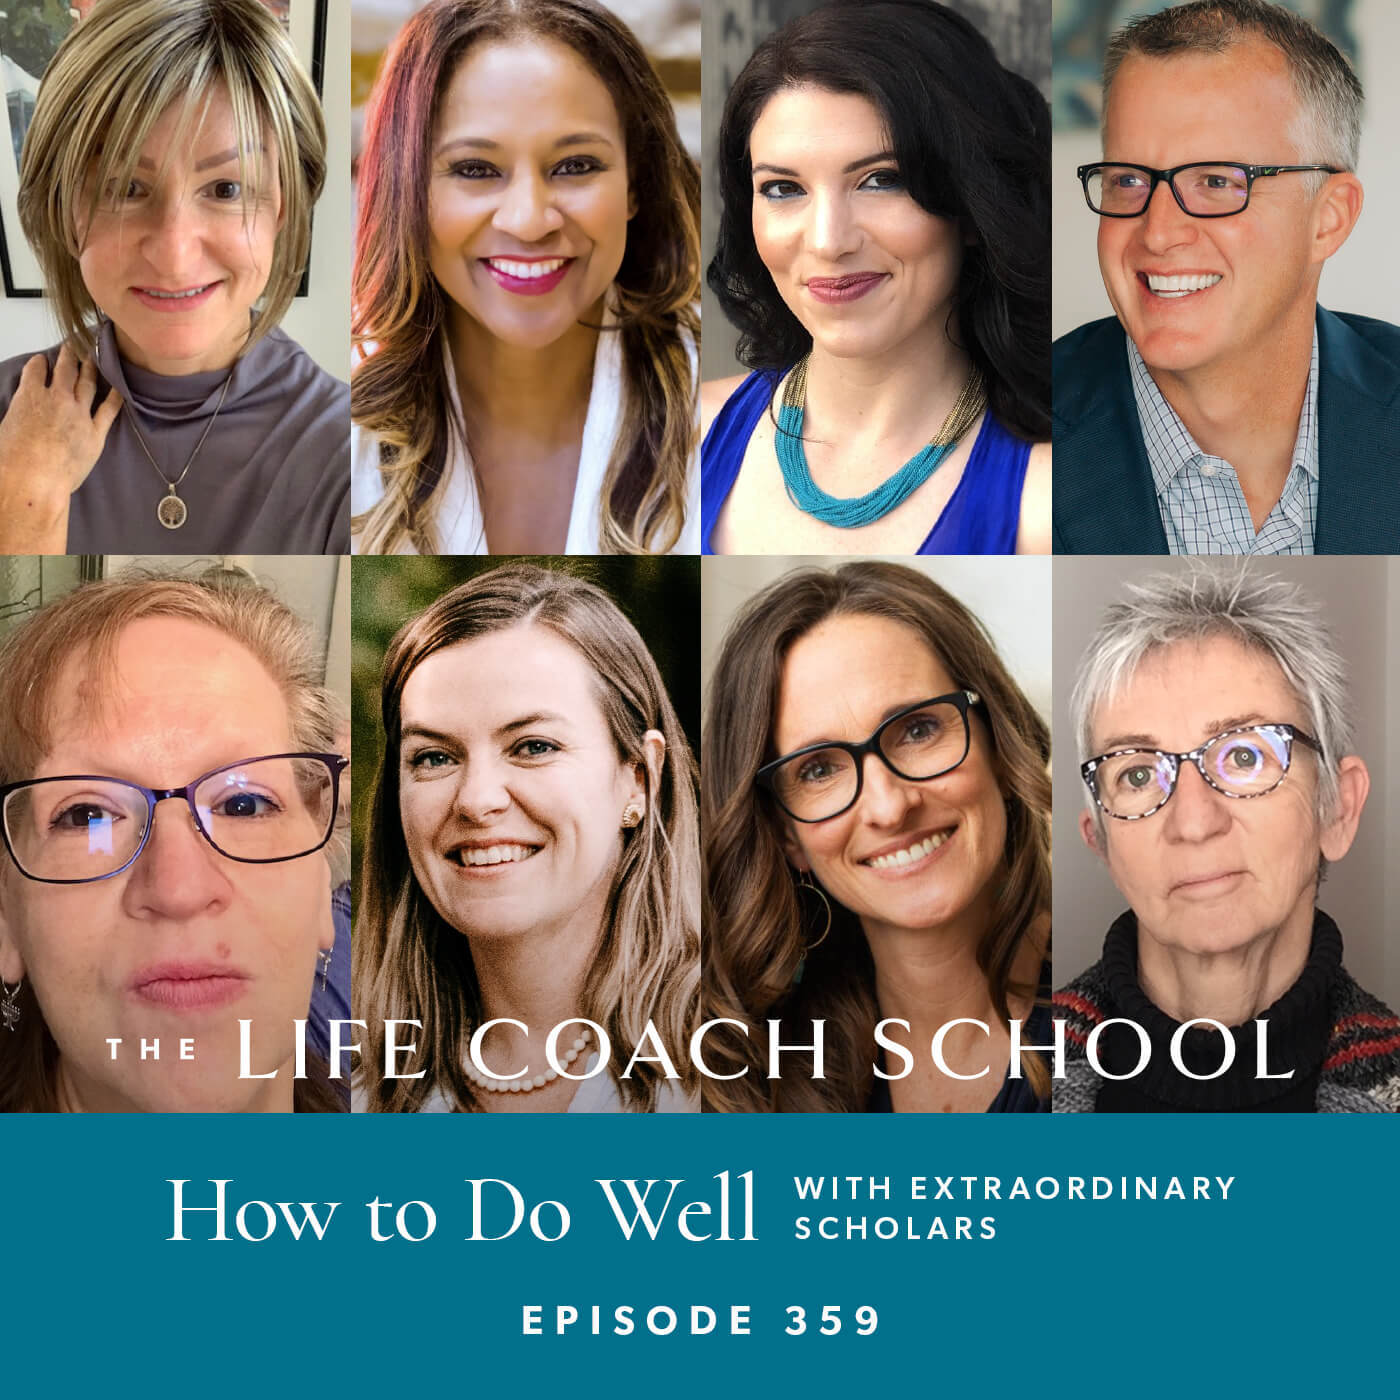 The Life Coach School Podcast with Brooke Castillo | How to Do Well with Extraordinary Scholars